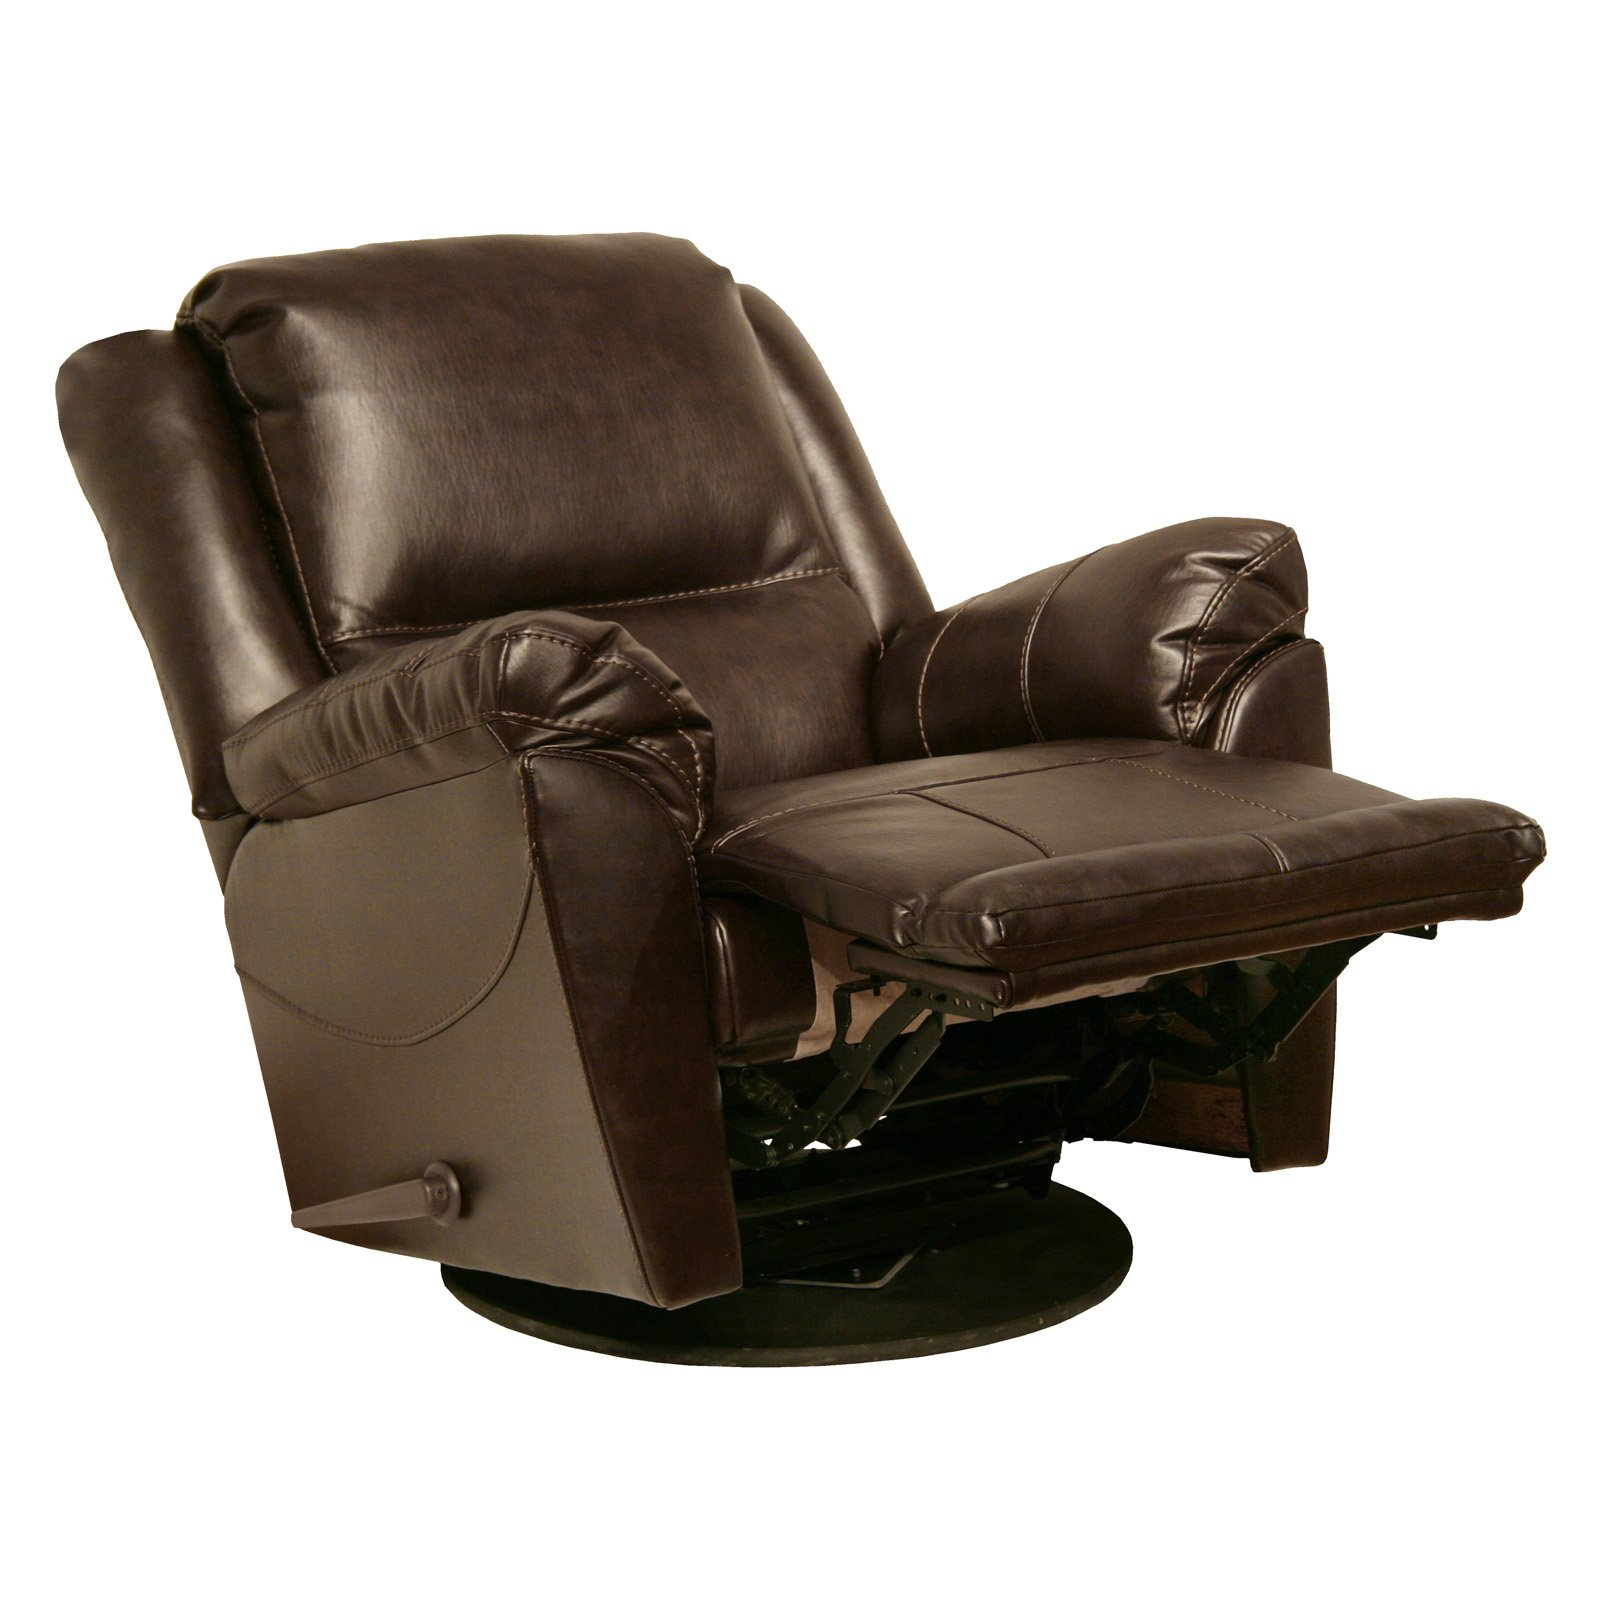 Catnapper Maverick Chaise Leather Swivel Glider Recliner – Walmart Inside Swivel Tobacco Leather Chairs (Image 4 of 20)